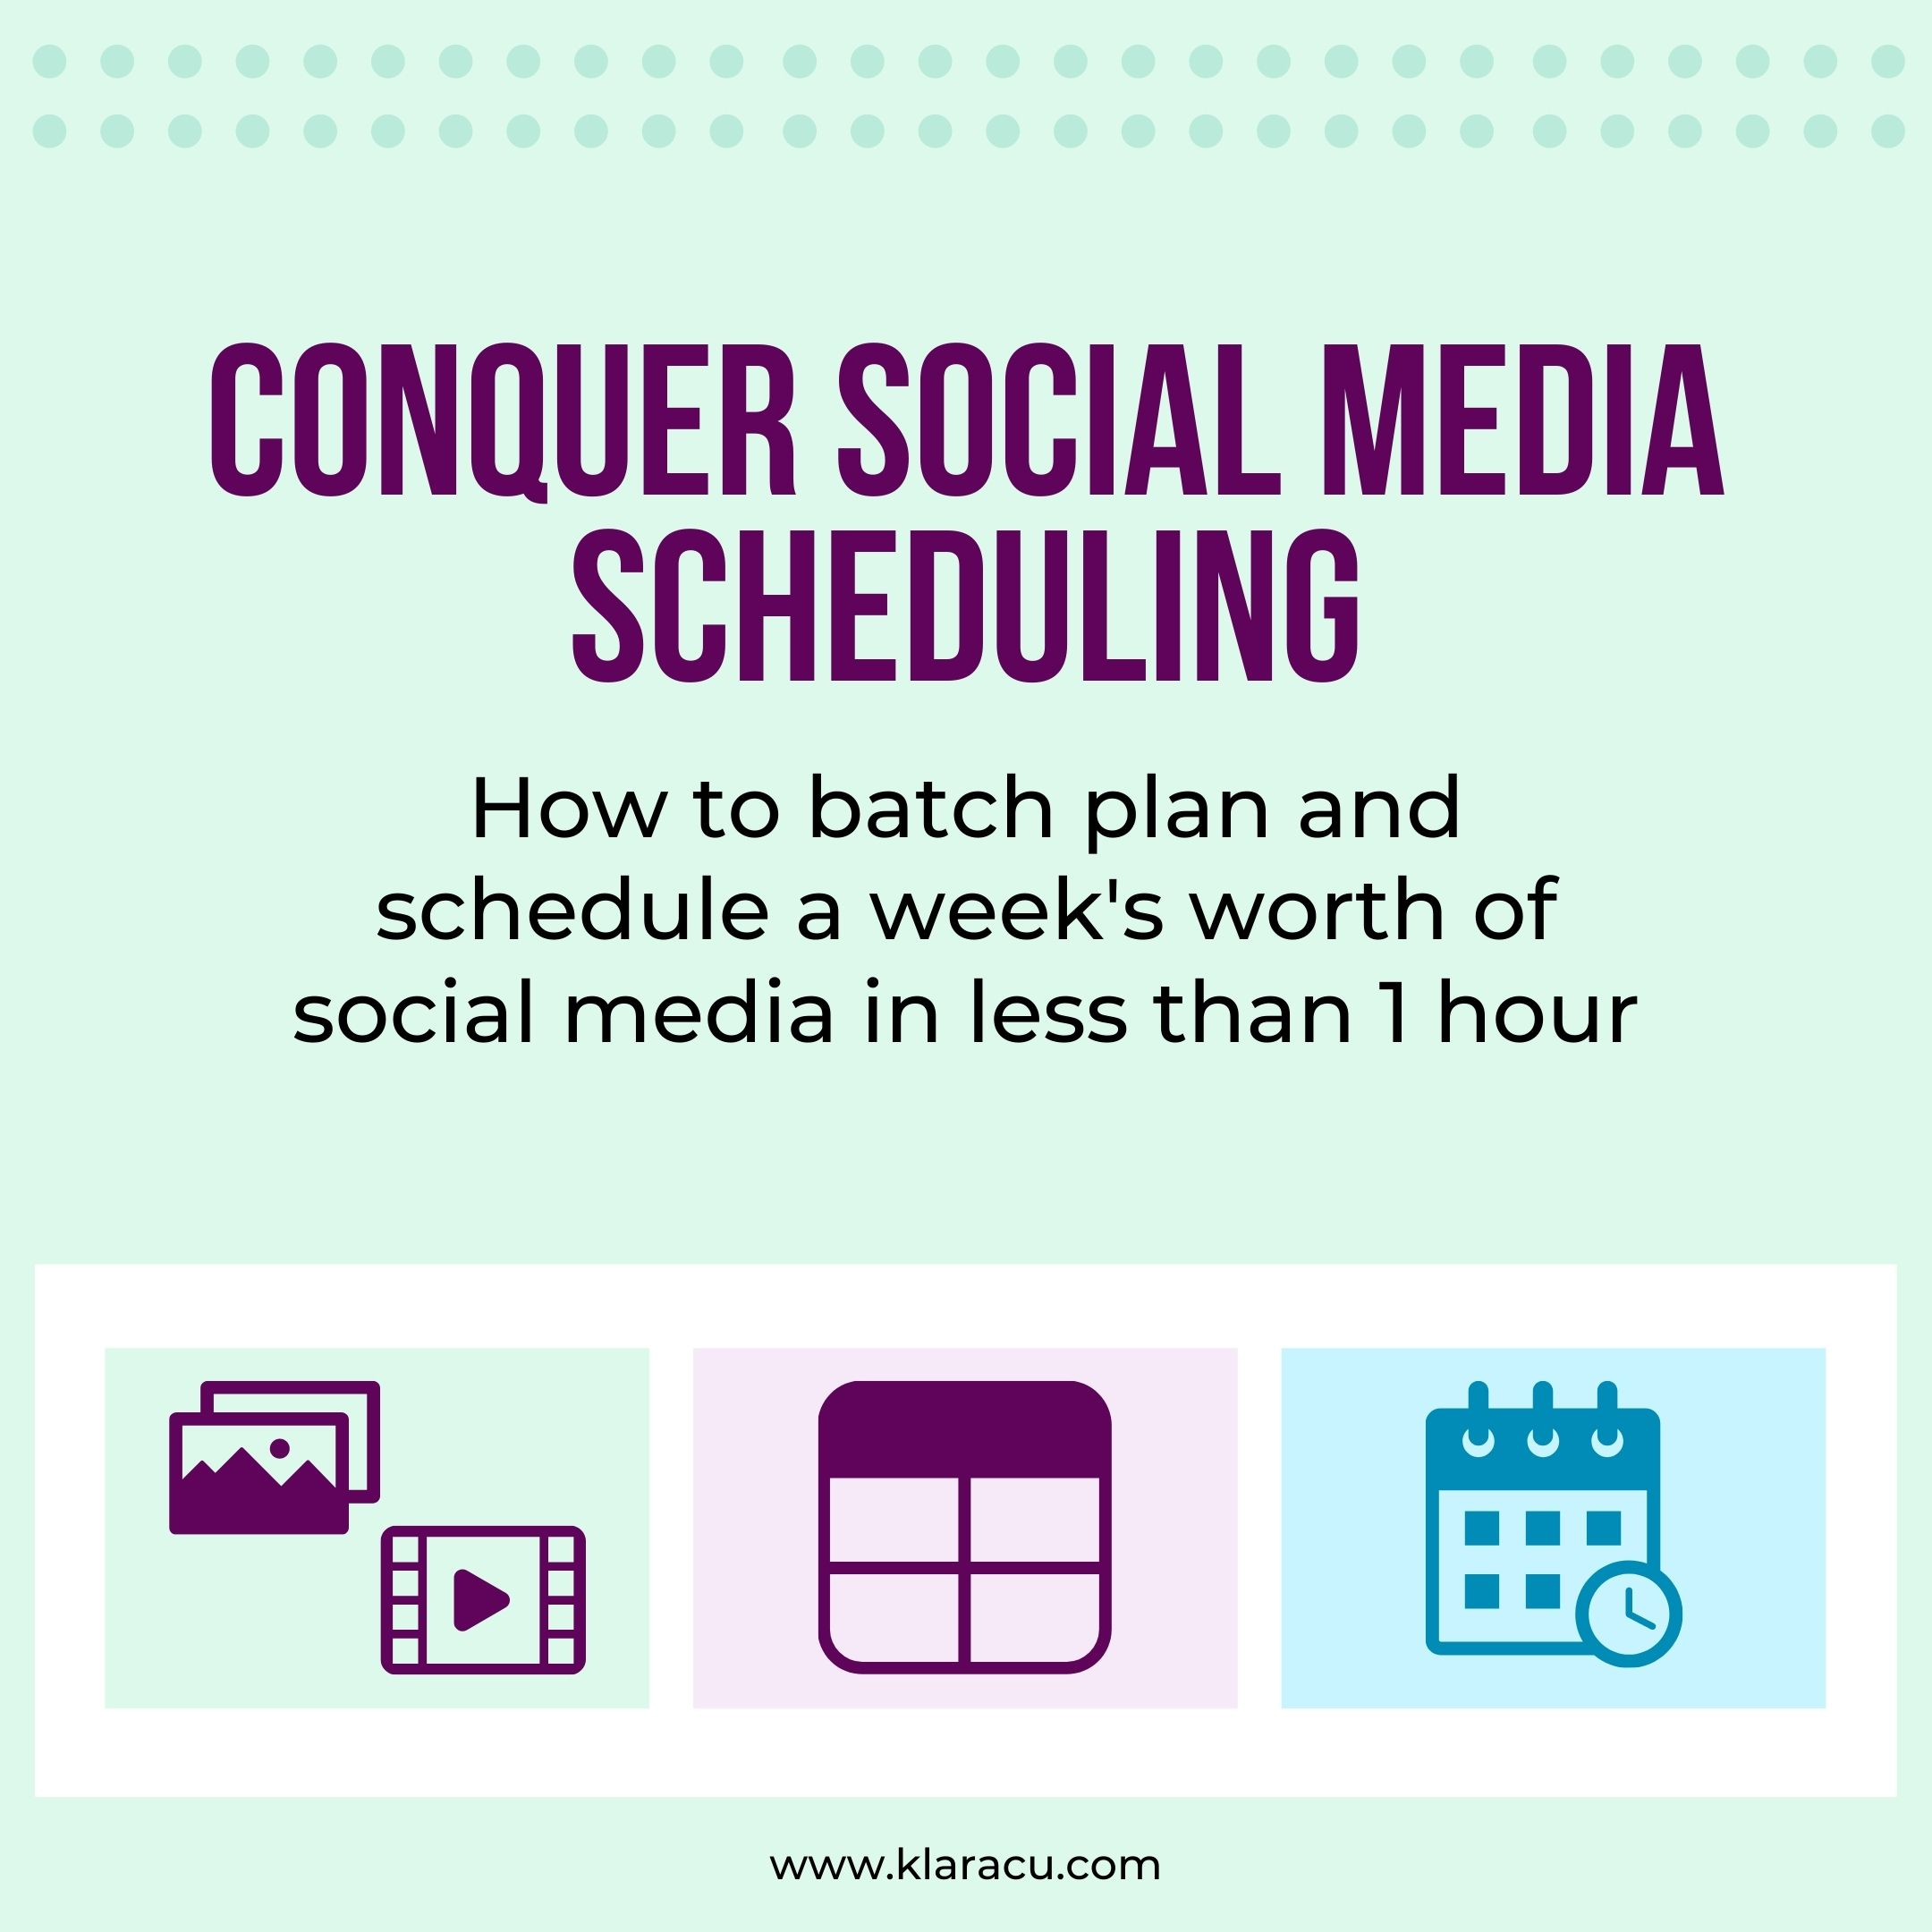 conquer-social-media-scheduling